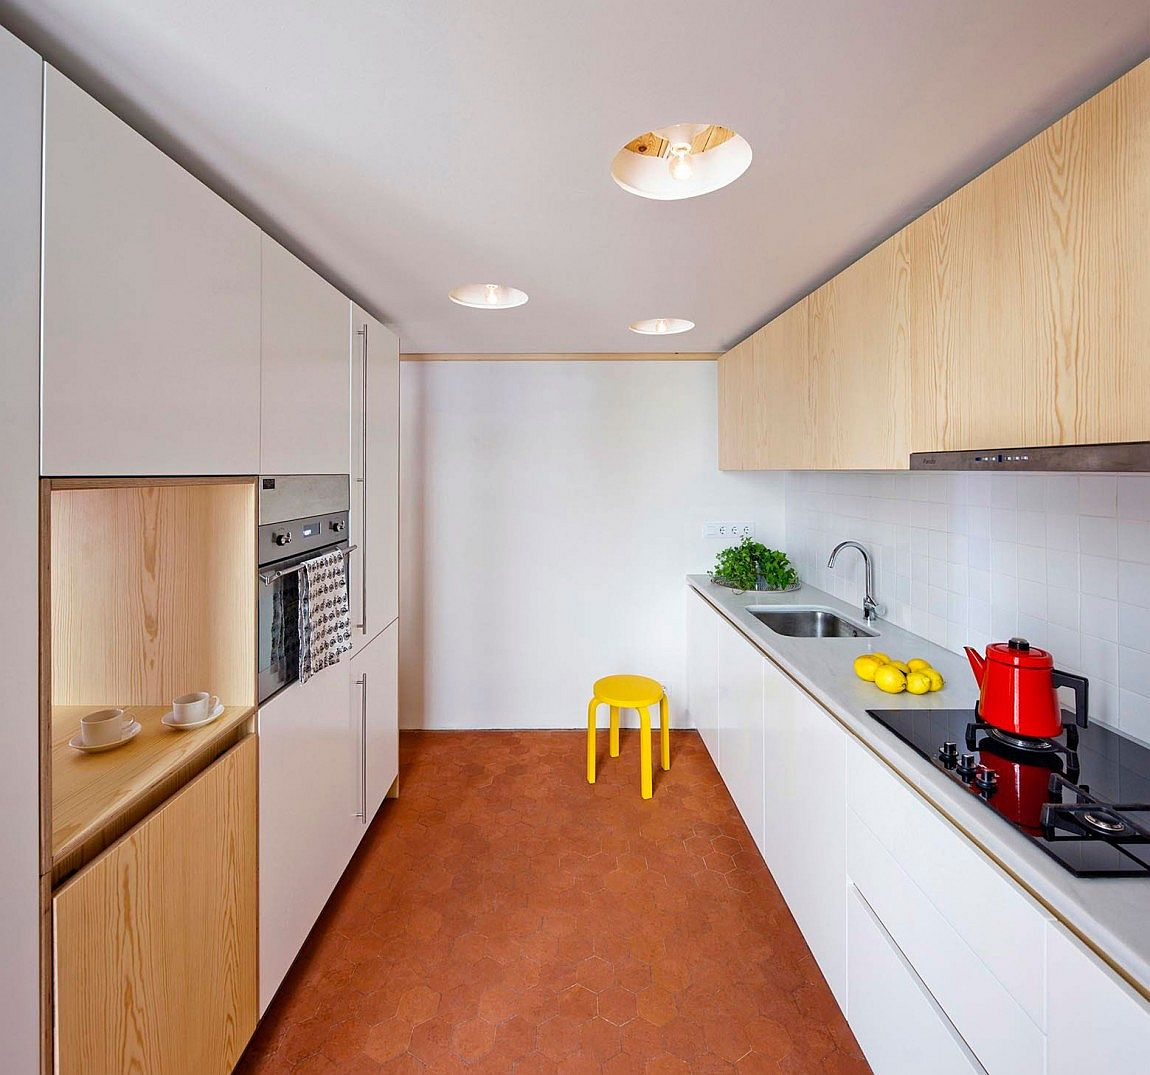 Hexagonal floor tiles stand out in the innovative and space-savvy kitchen